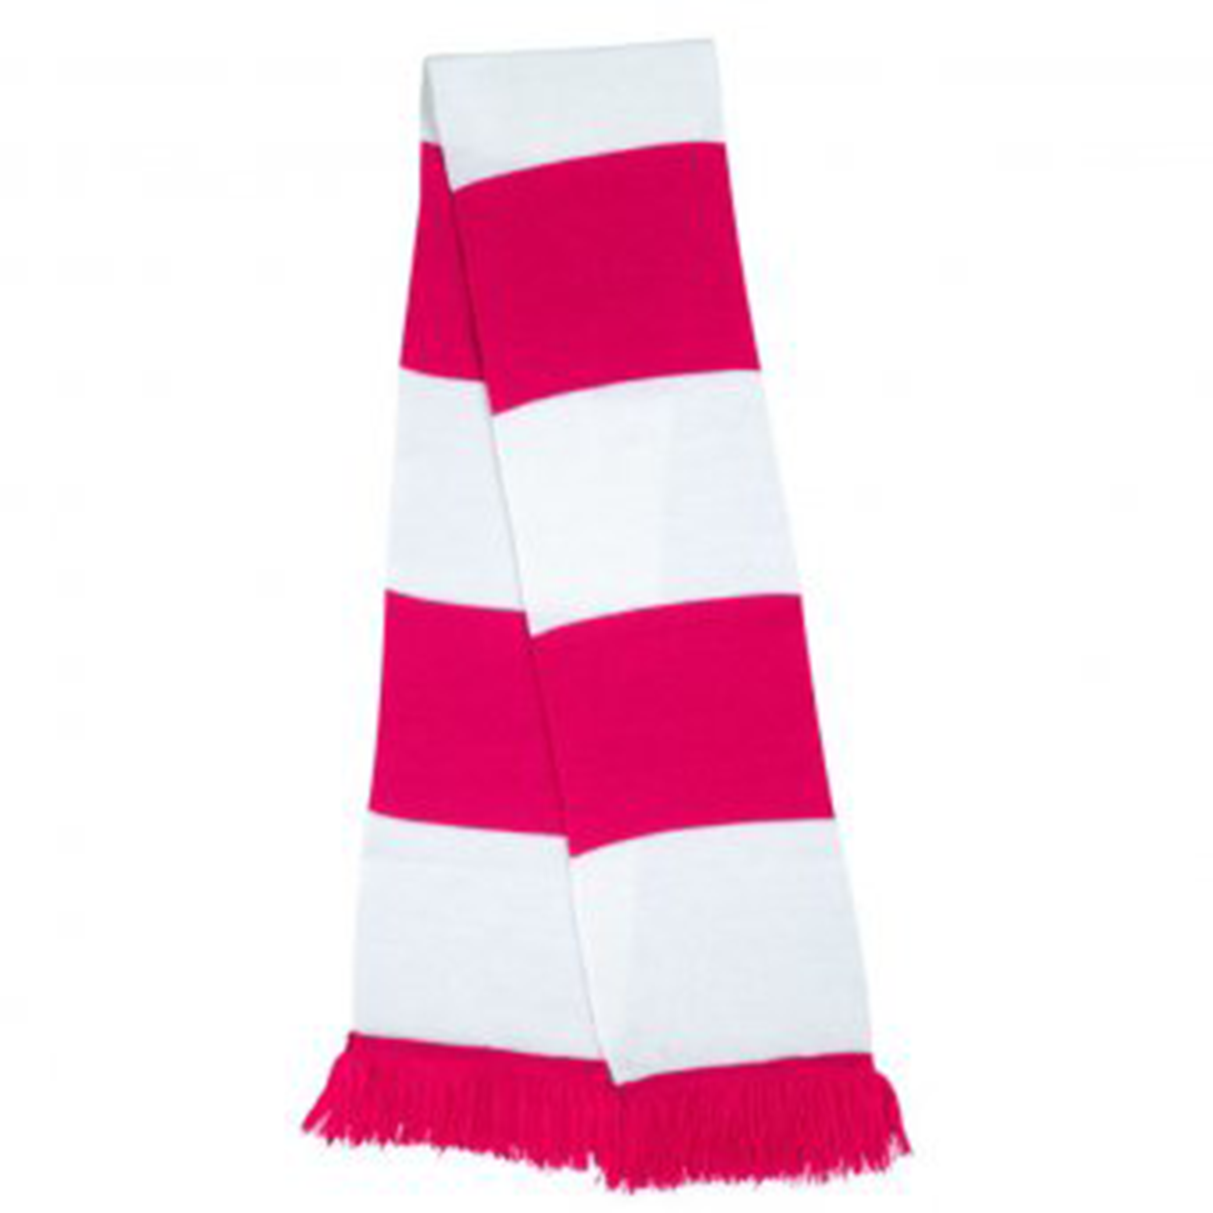 SWAZ Supporters Scarf – Pink/White